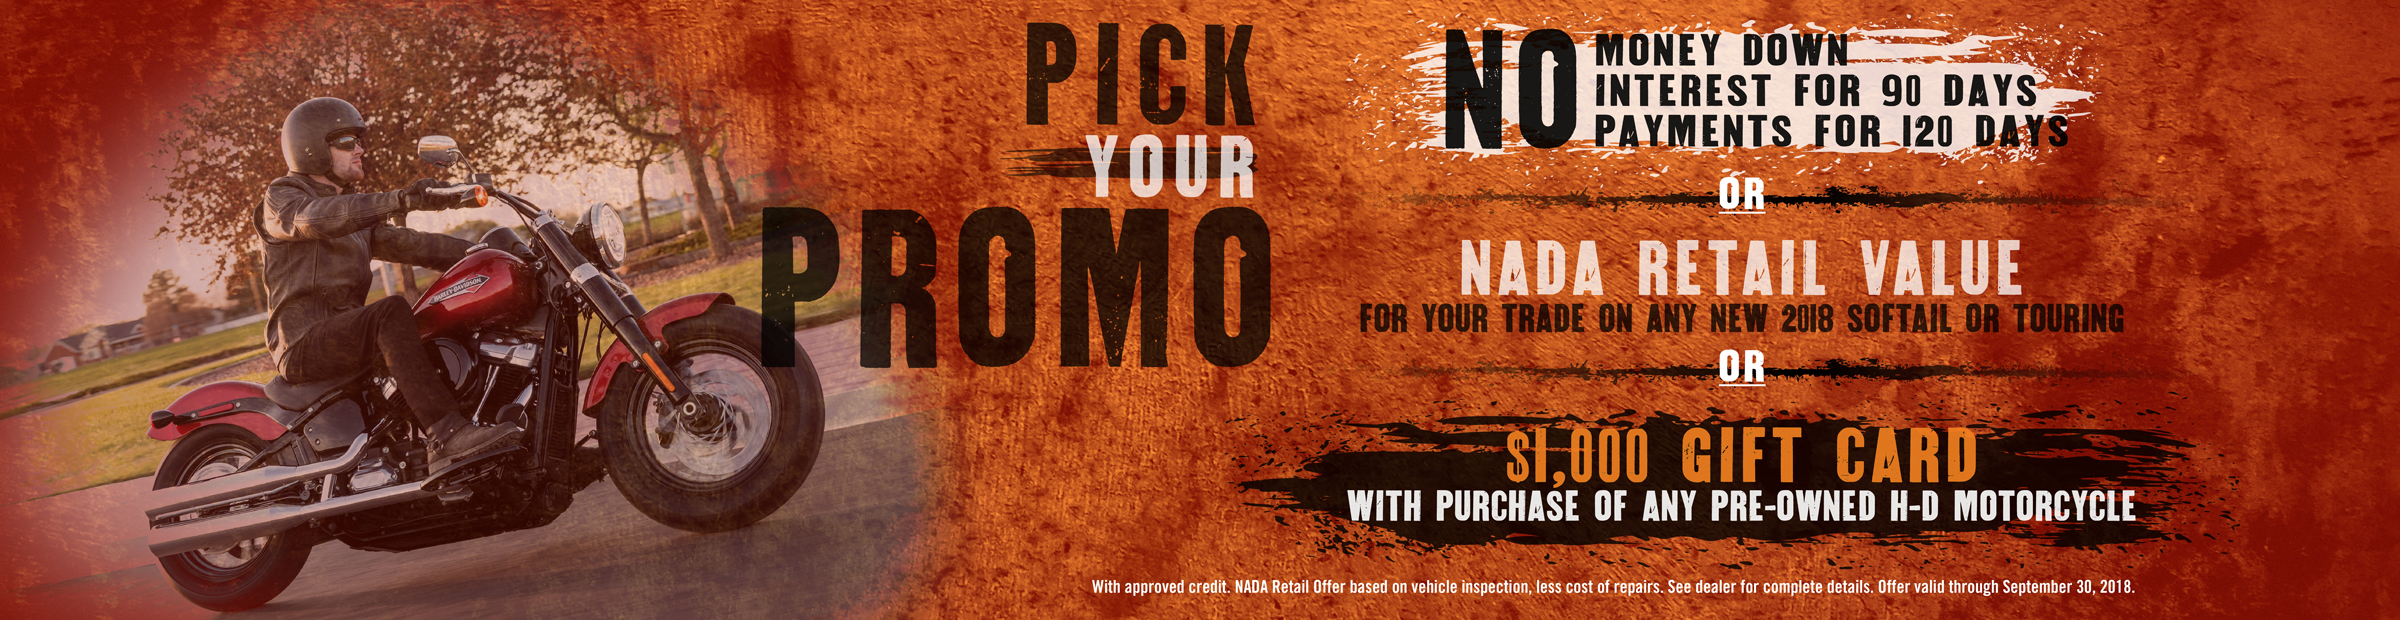 Pick Your Promo